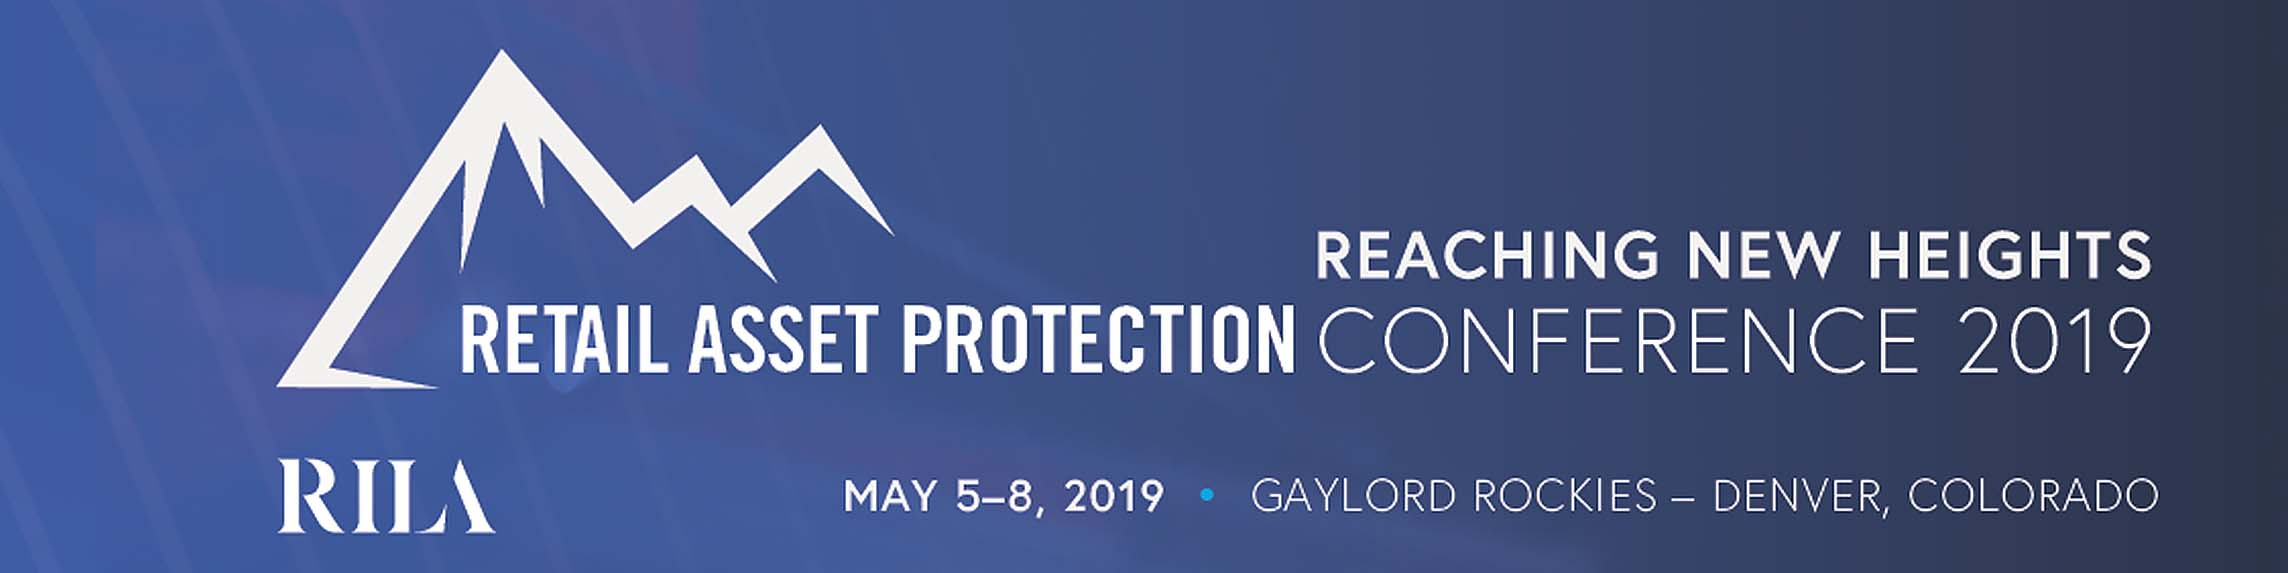 RILA-Retail Asset Protection Conference 2019